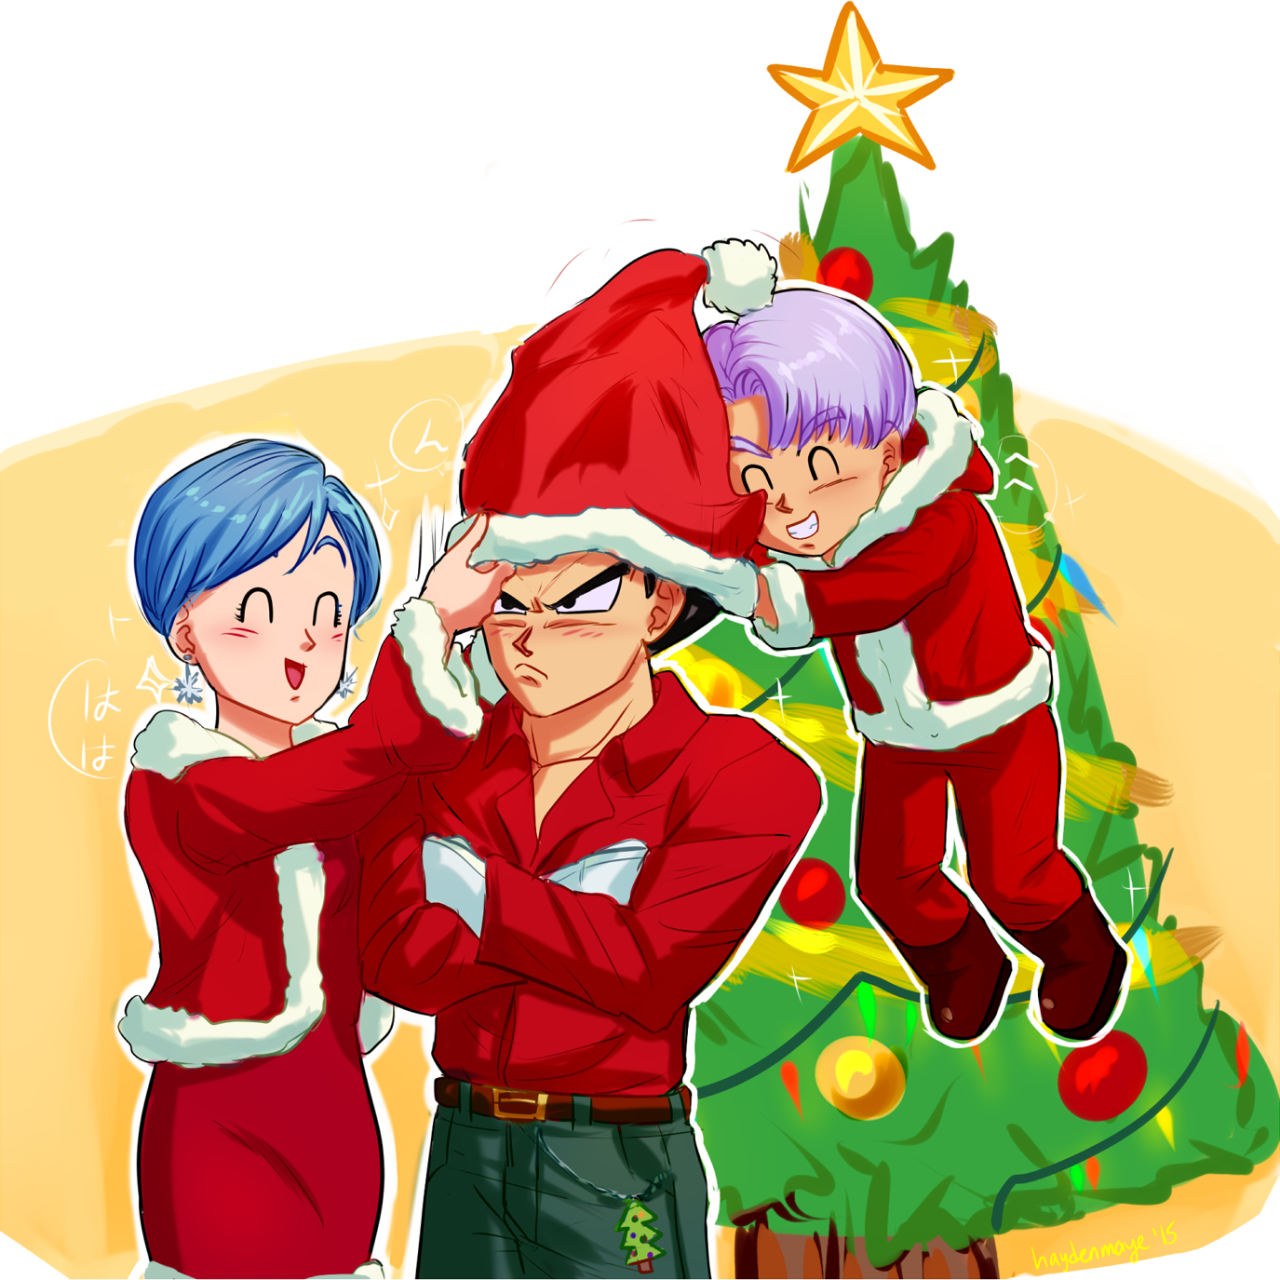 Dragon Ball Super Christmas Wallpaper: Vegeta ~ Bulma ~ Trunks